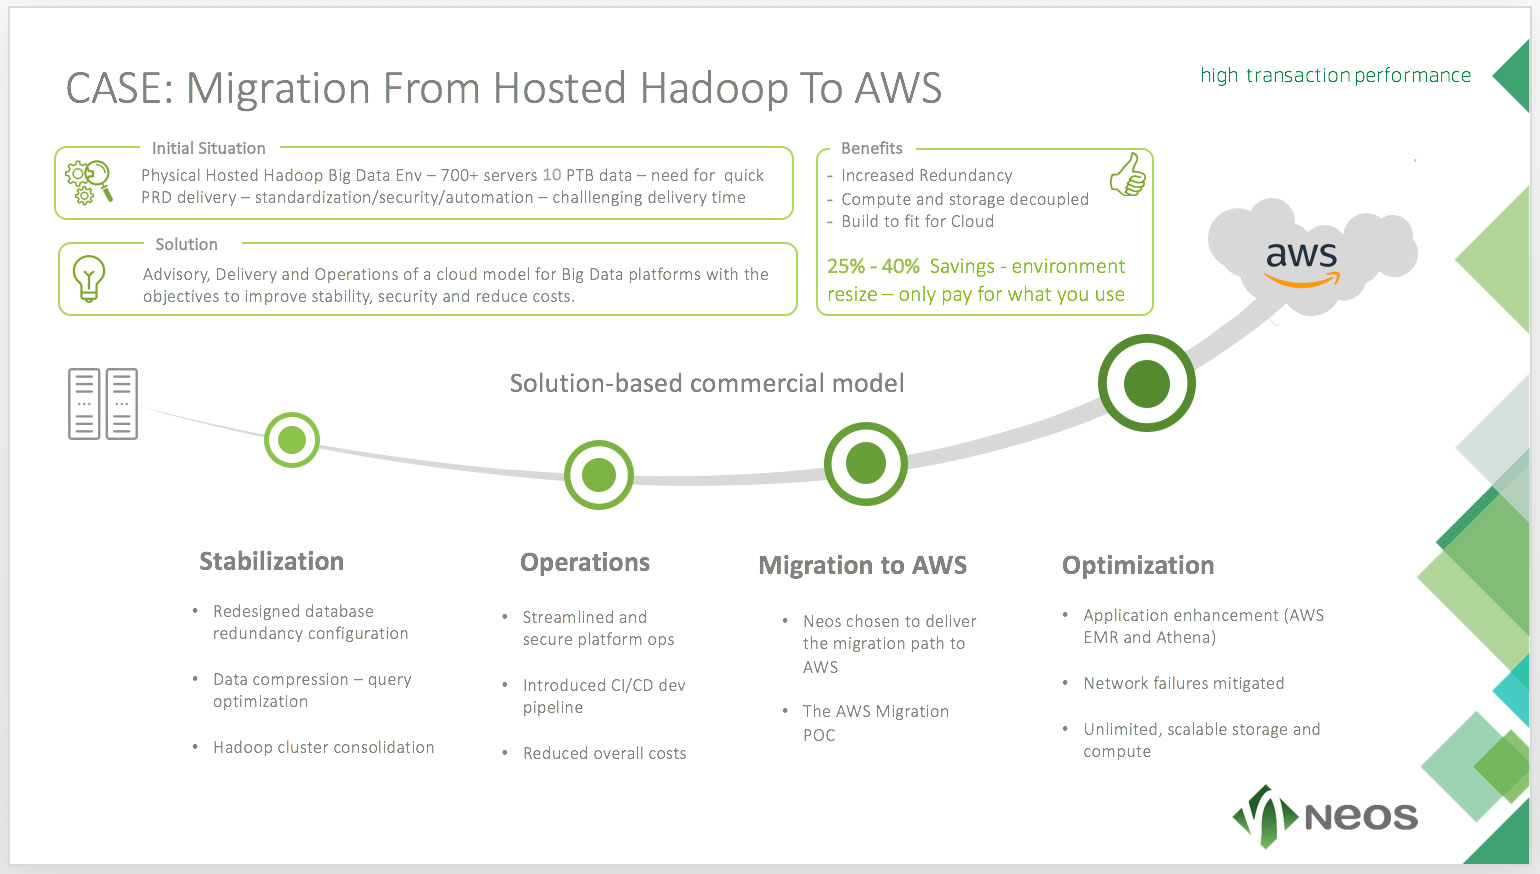 Neos IT Services, CASE: Migration from hosted Hadoop to AWS